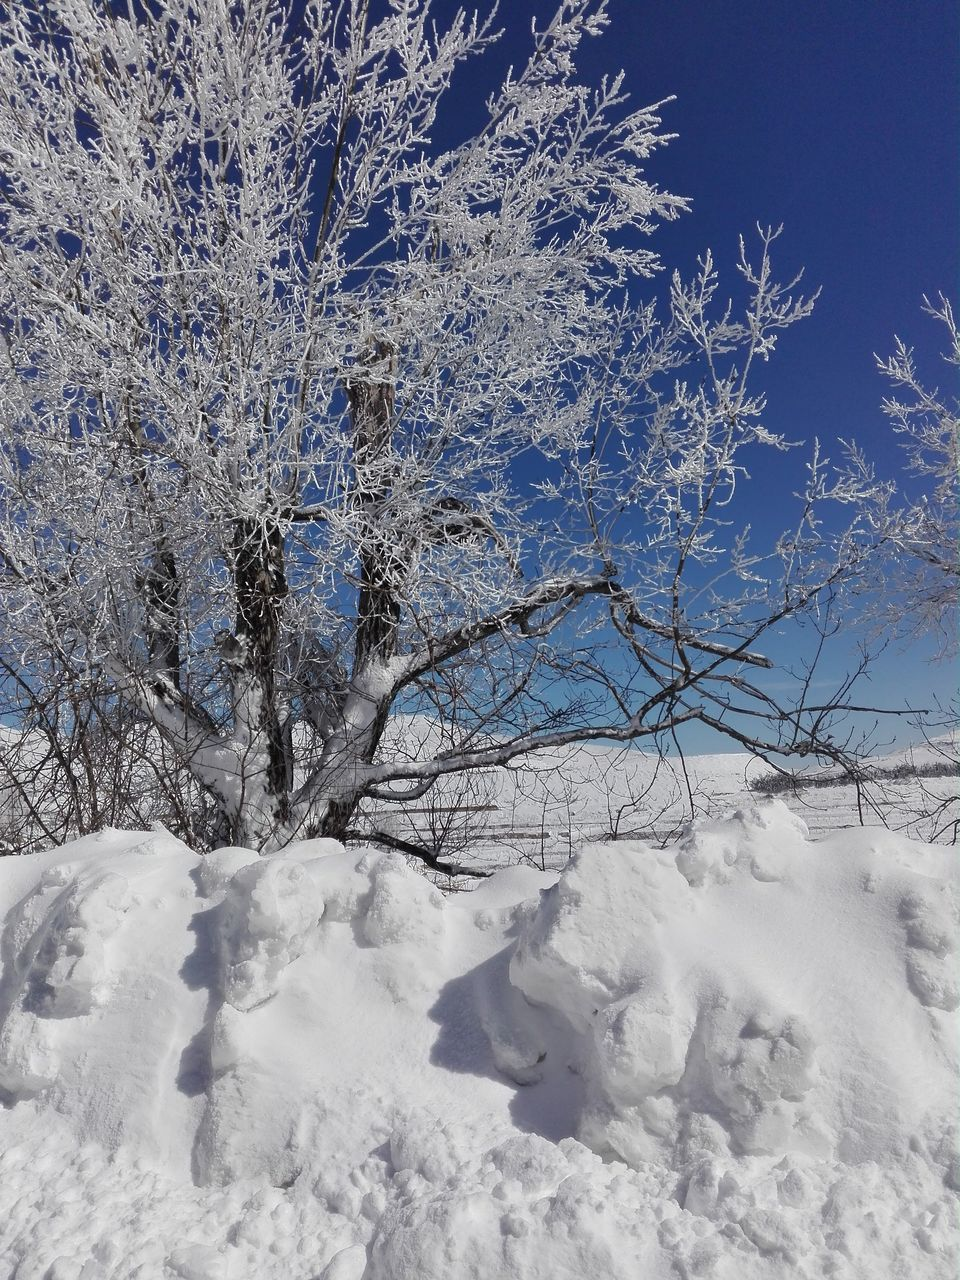 winter, snow, cold temperature, white, nature, white color, tranquility, beauty in nature, tranquil scene, tree, no people, blue, outdoors, frozen, scenics, day, landscape, bare tree, branch, sky